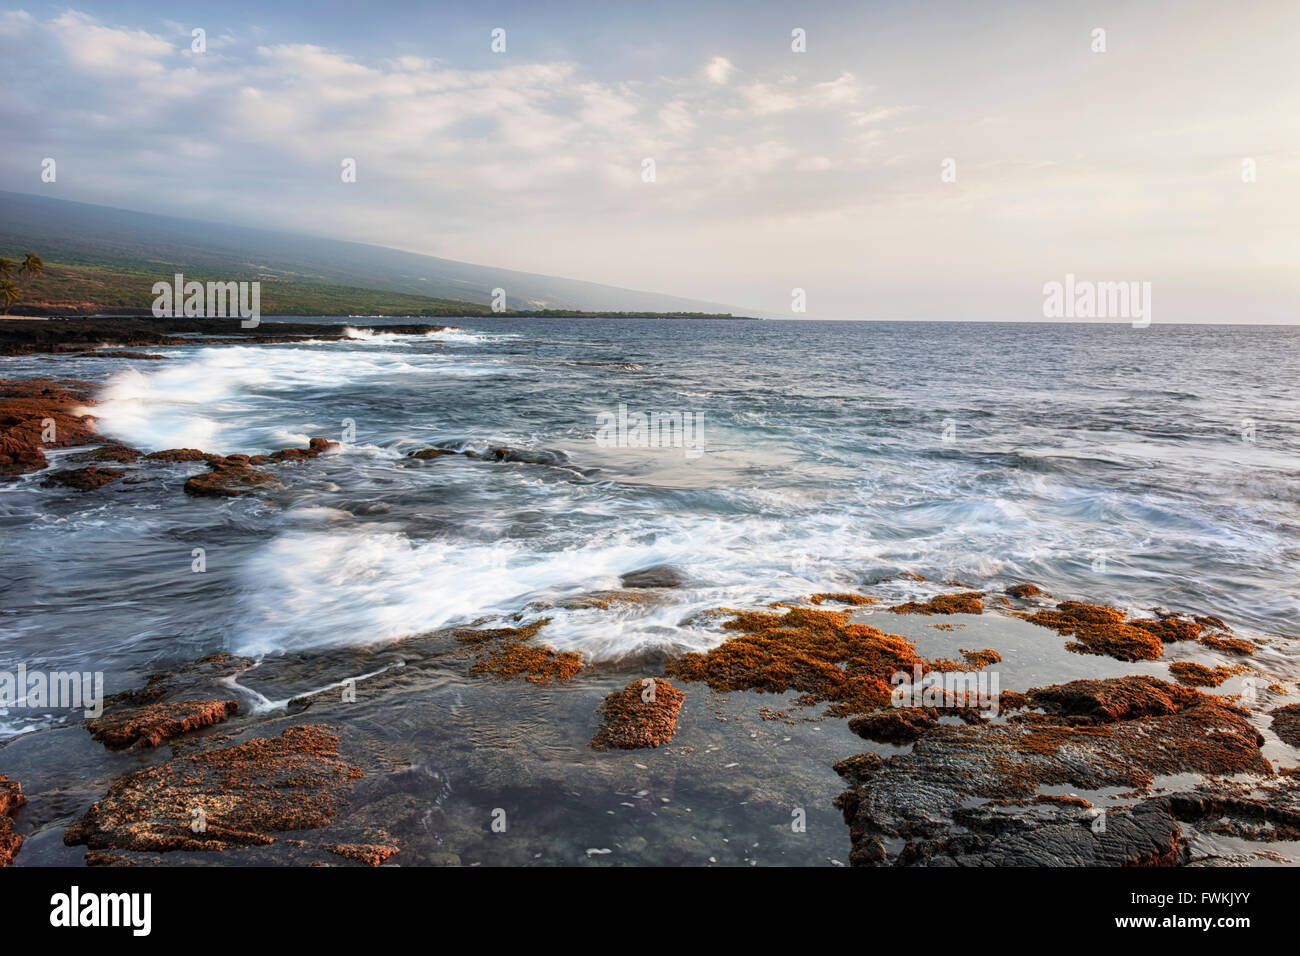 Evening surf pours over the tide pools at The Place of Refuge National Historical Park on the Big Island of Hawaii. - Stock Image